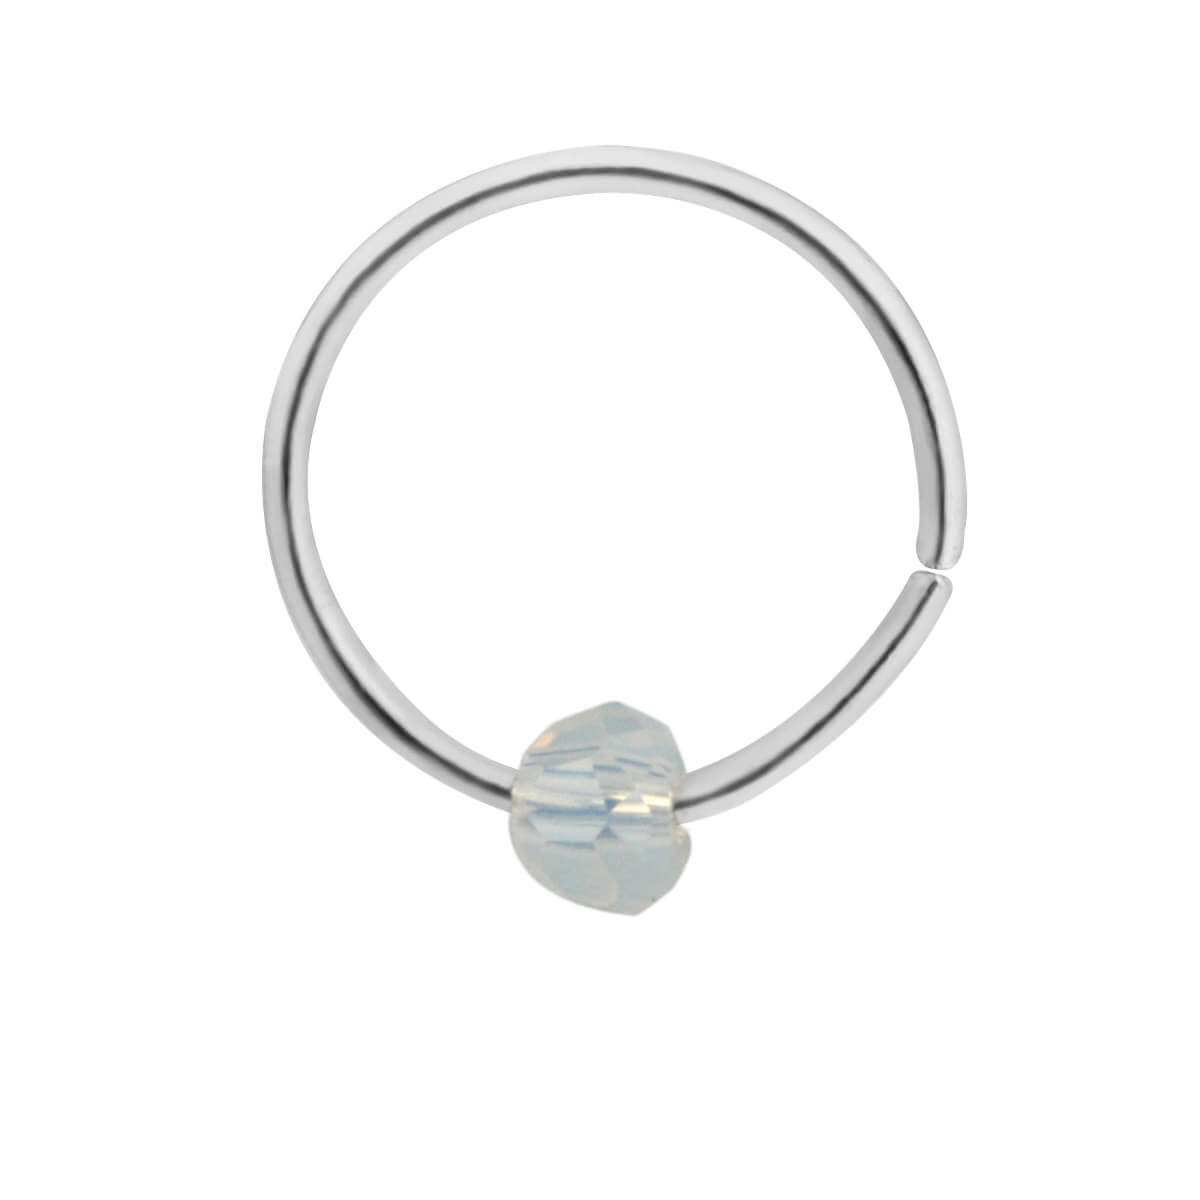 Sterling Silver & Faux Moonstone Bead Nose Ring hoop